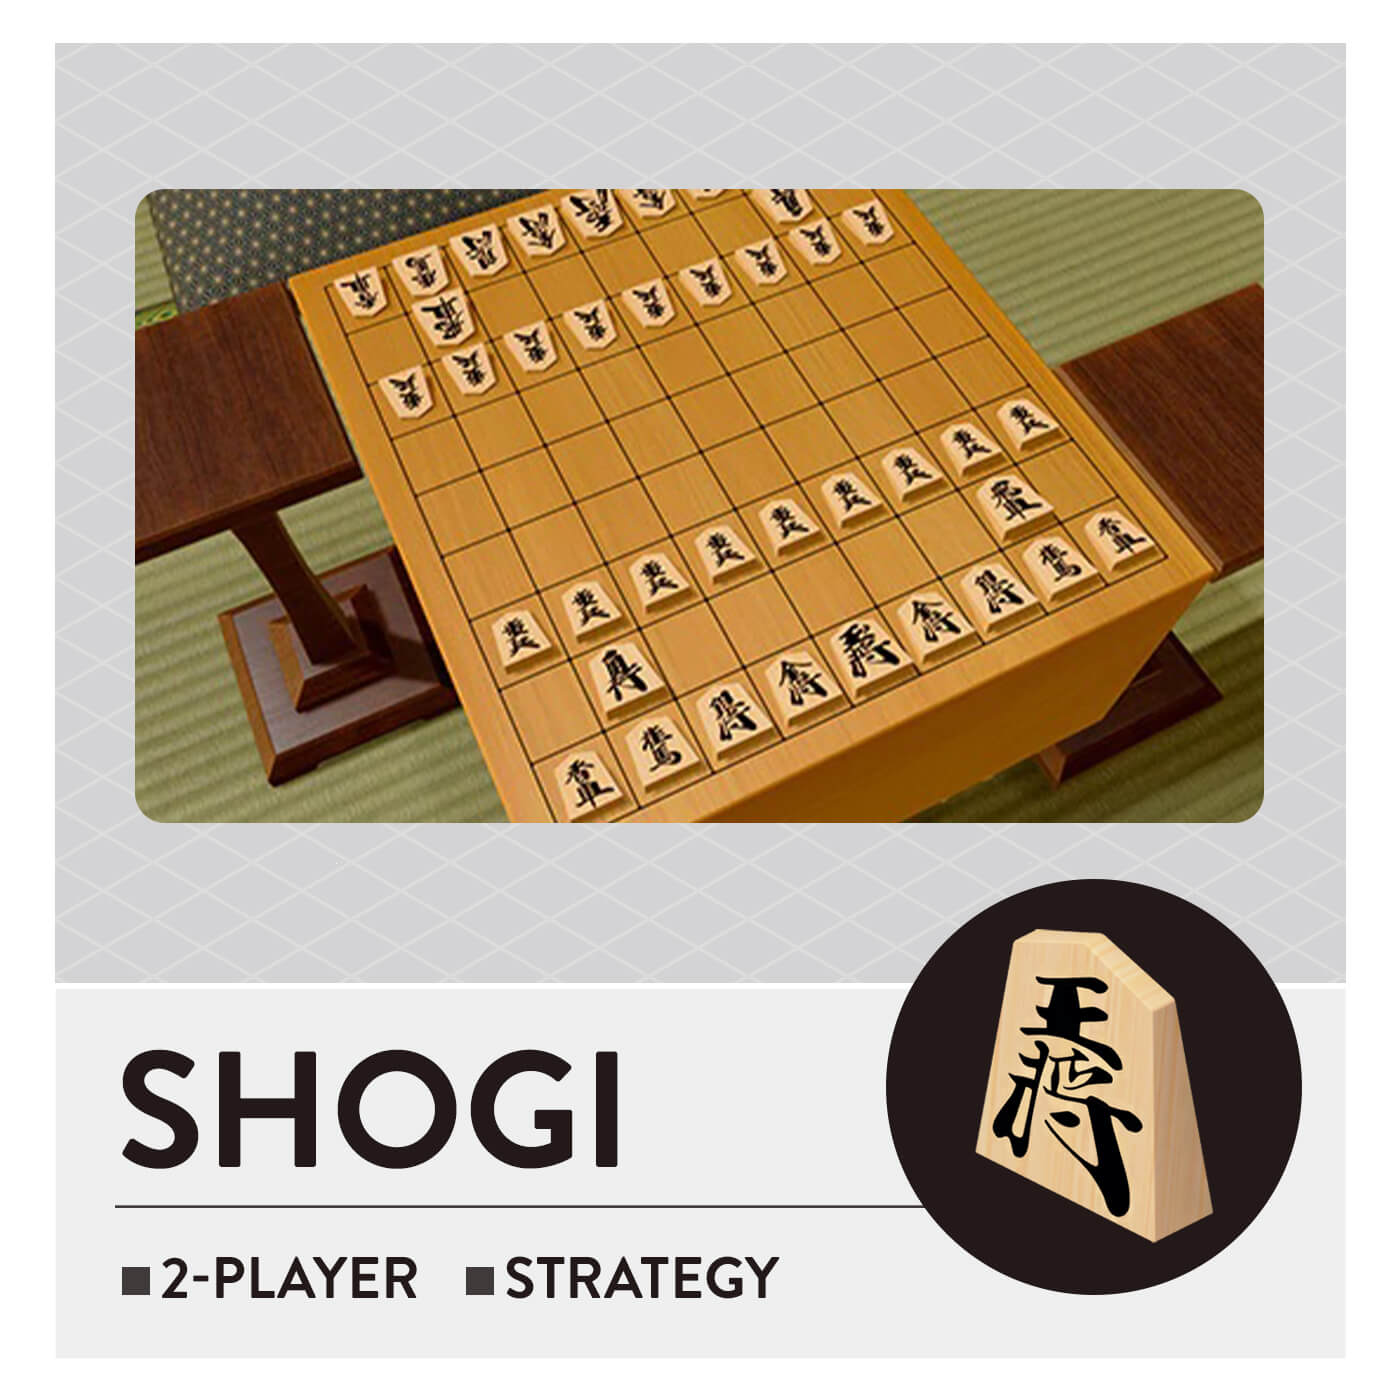 51 Worldwide Games - Shogi